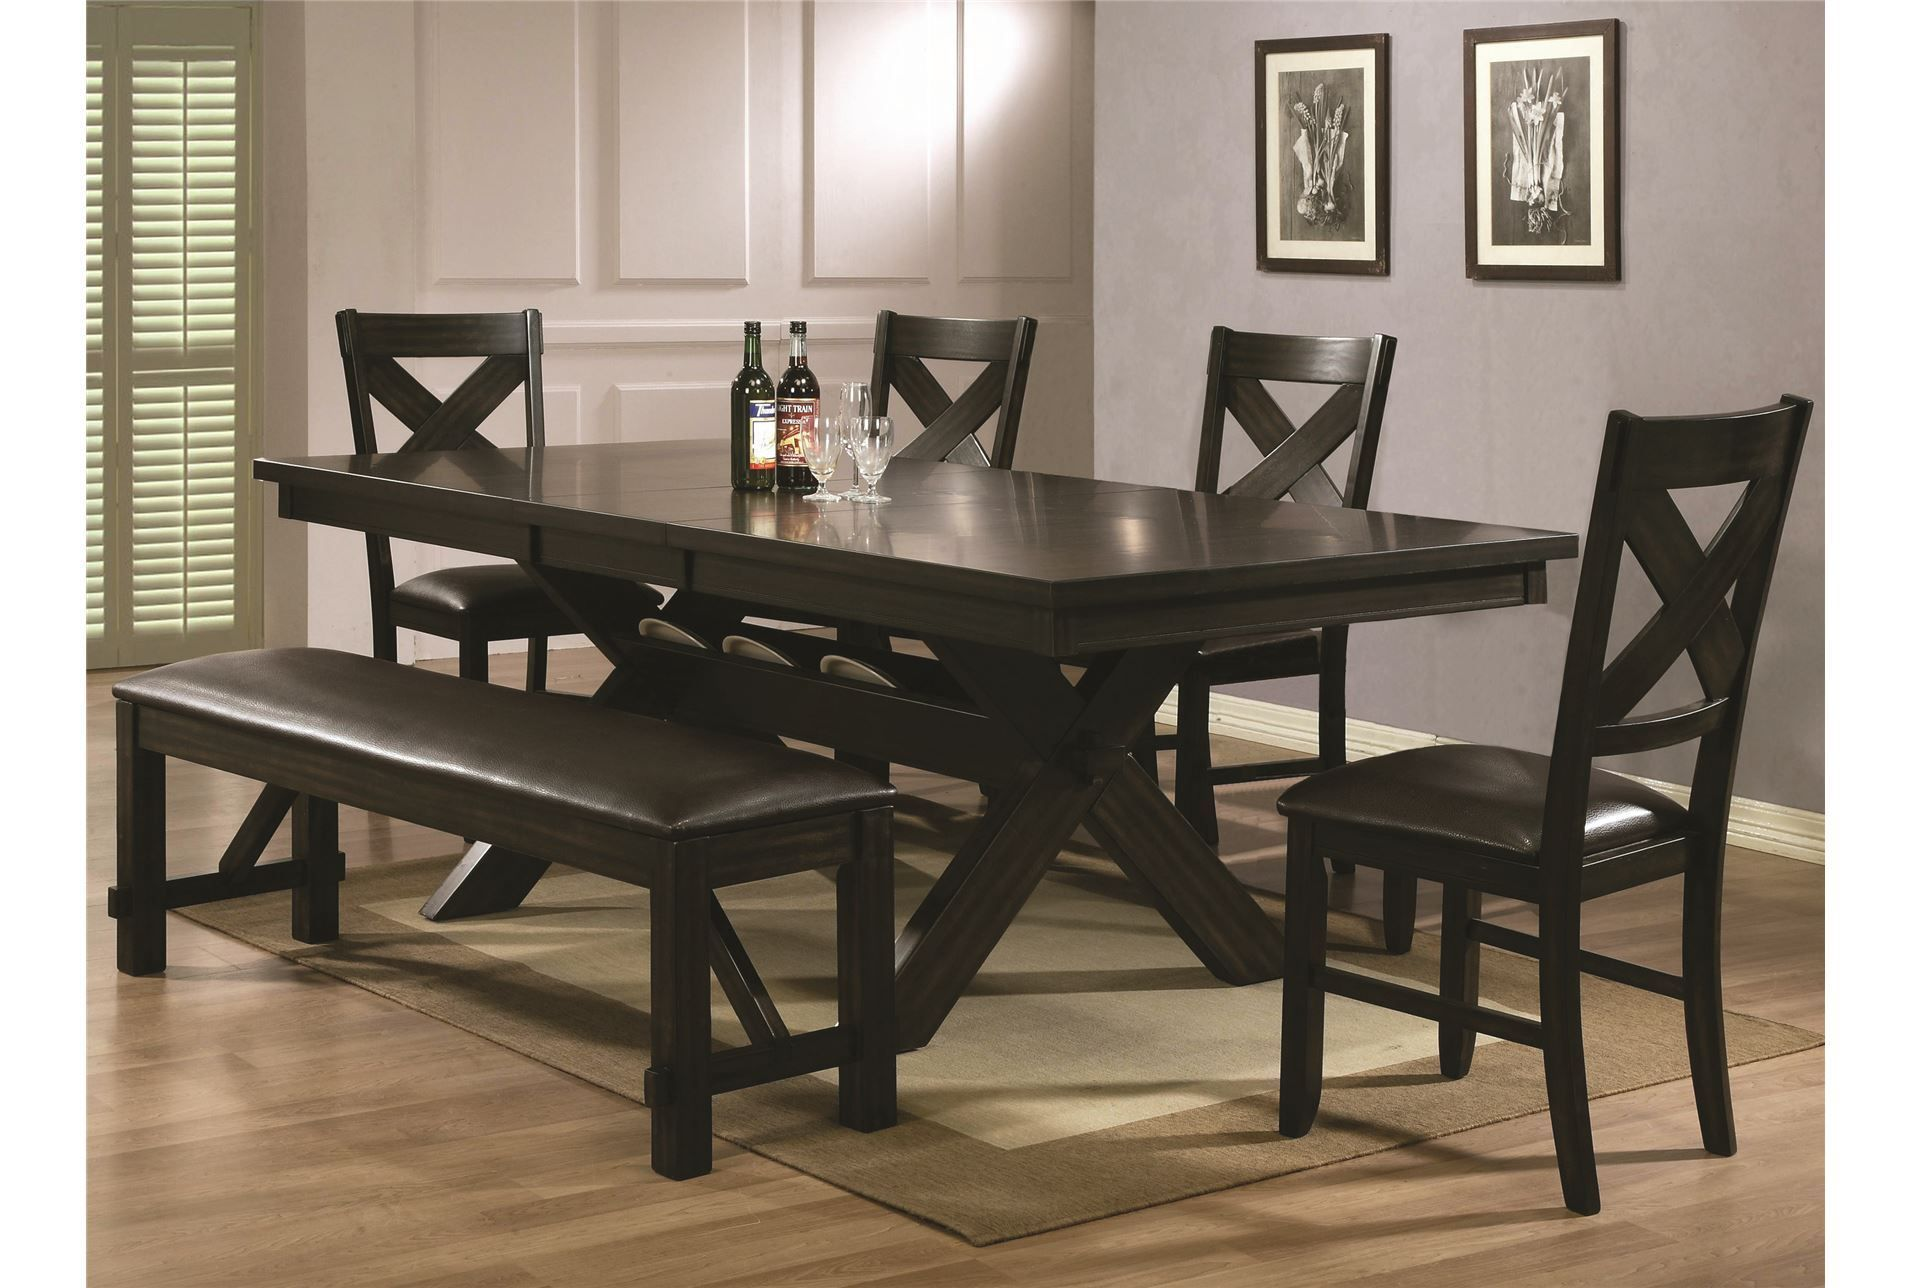 Pelennor 6 Piece Dining Set Living Spaces Farm Style